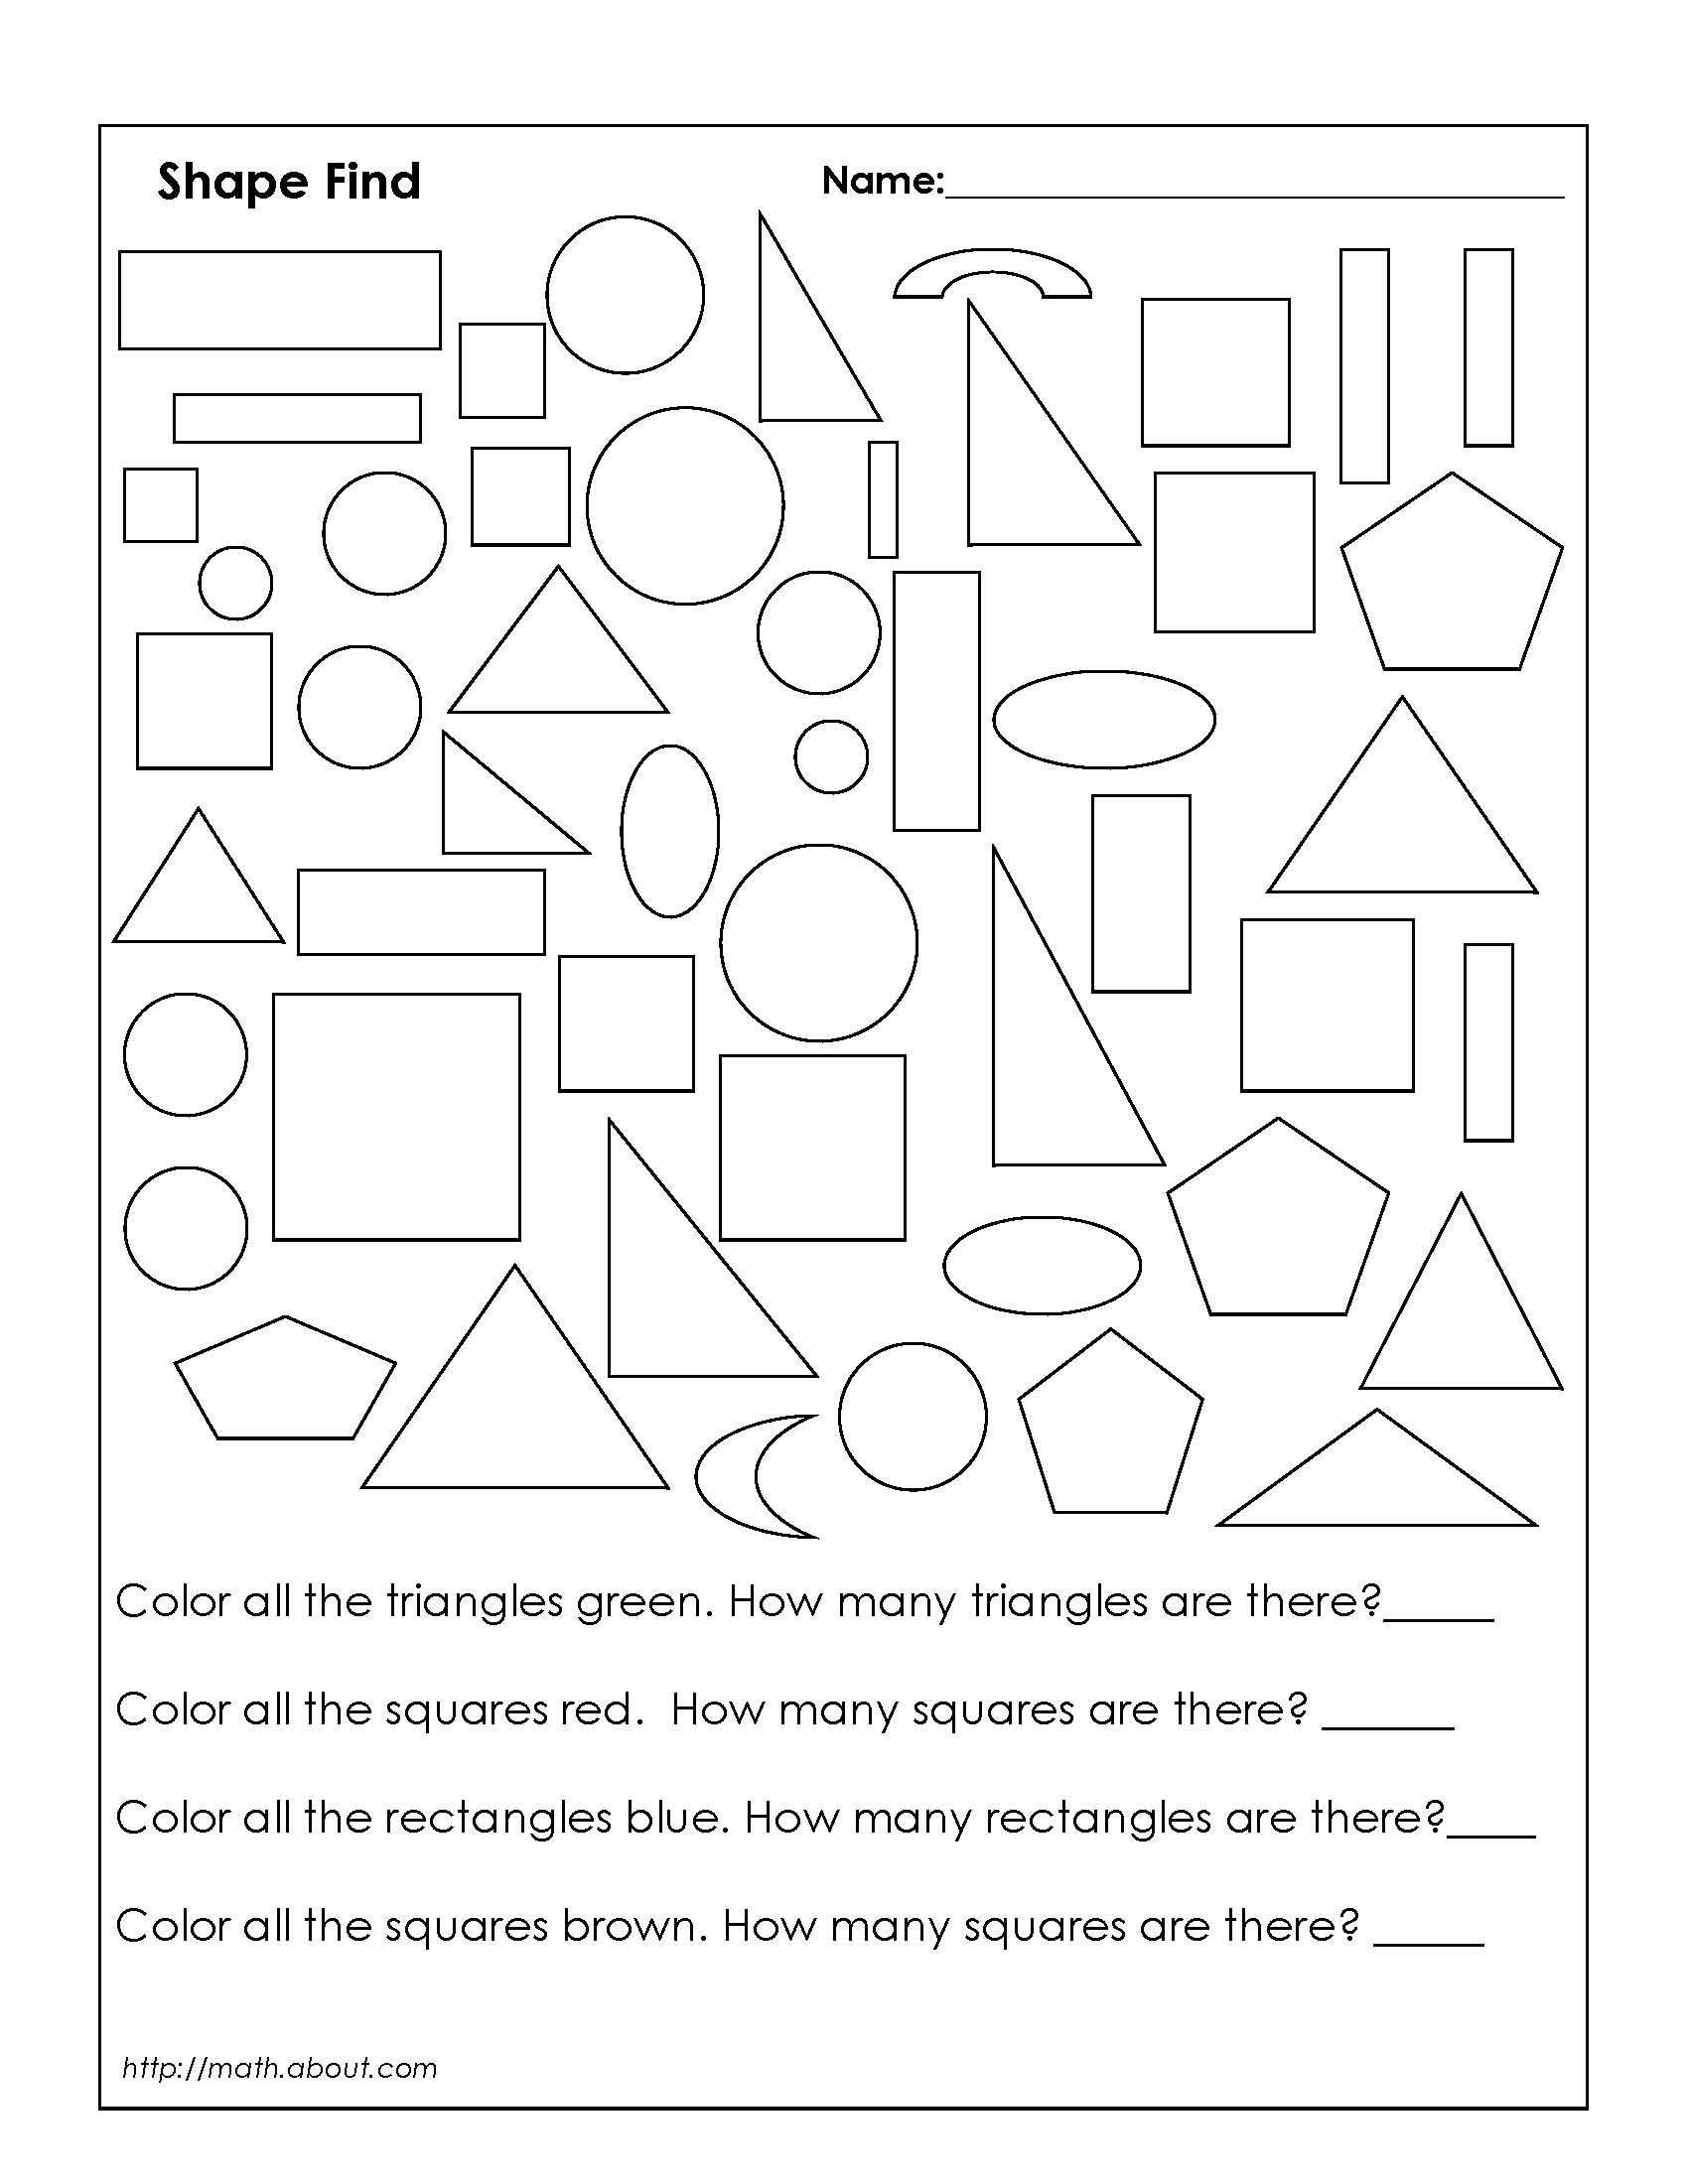 1st Grade Geometry Worksheets For Students | Geometry